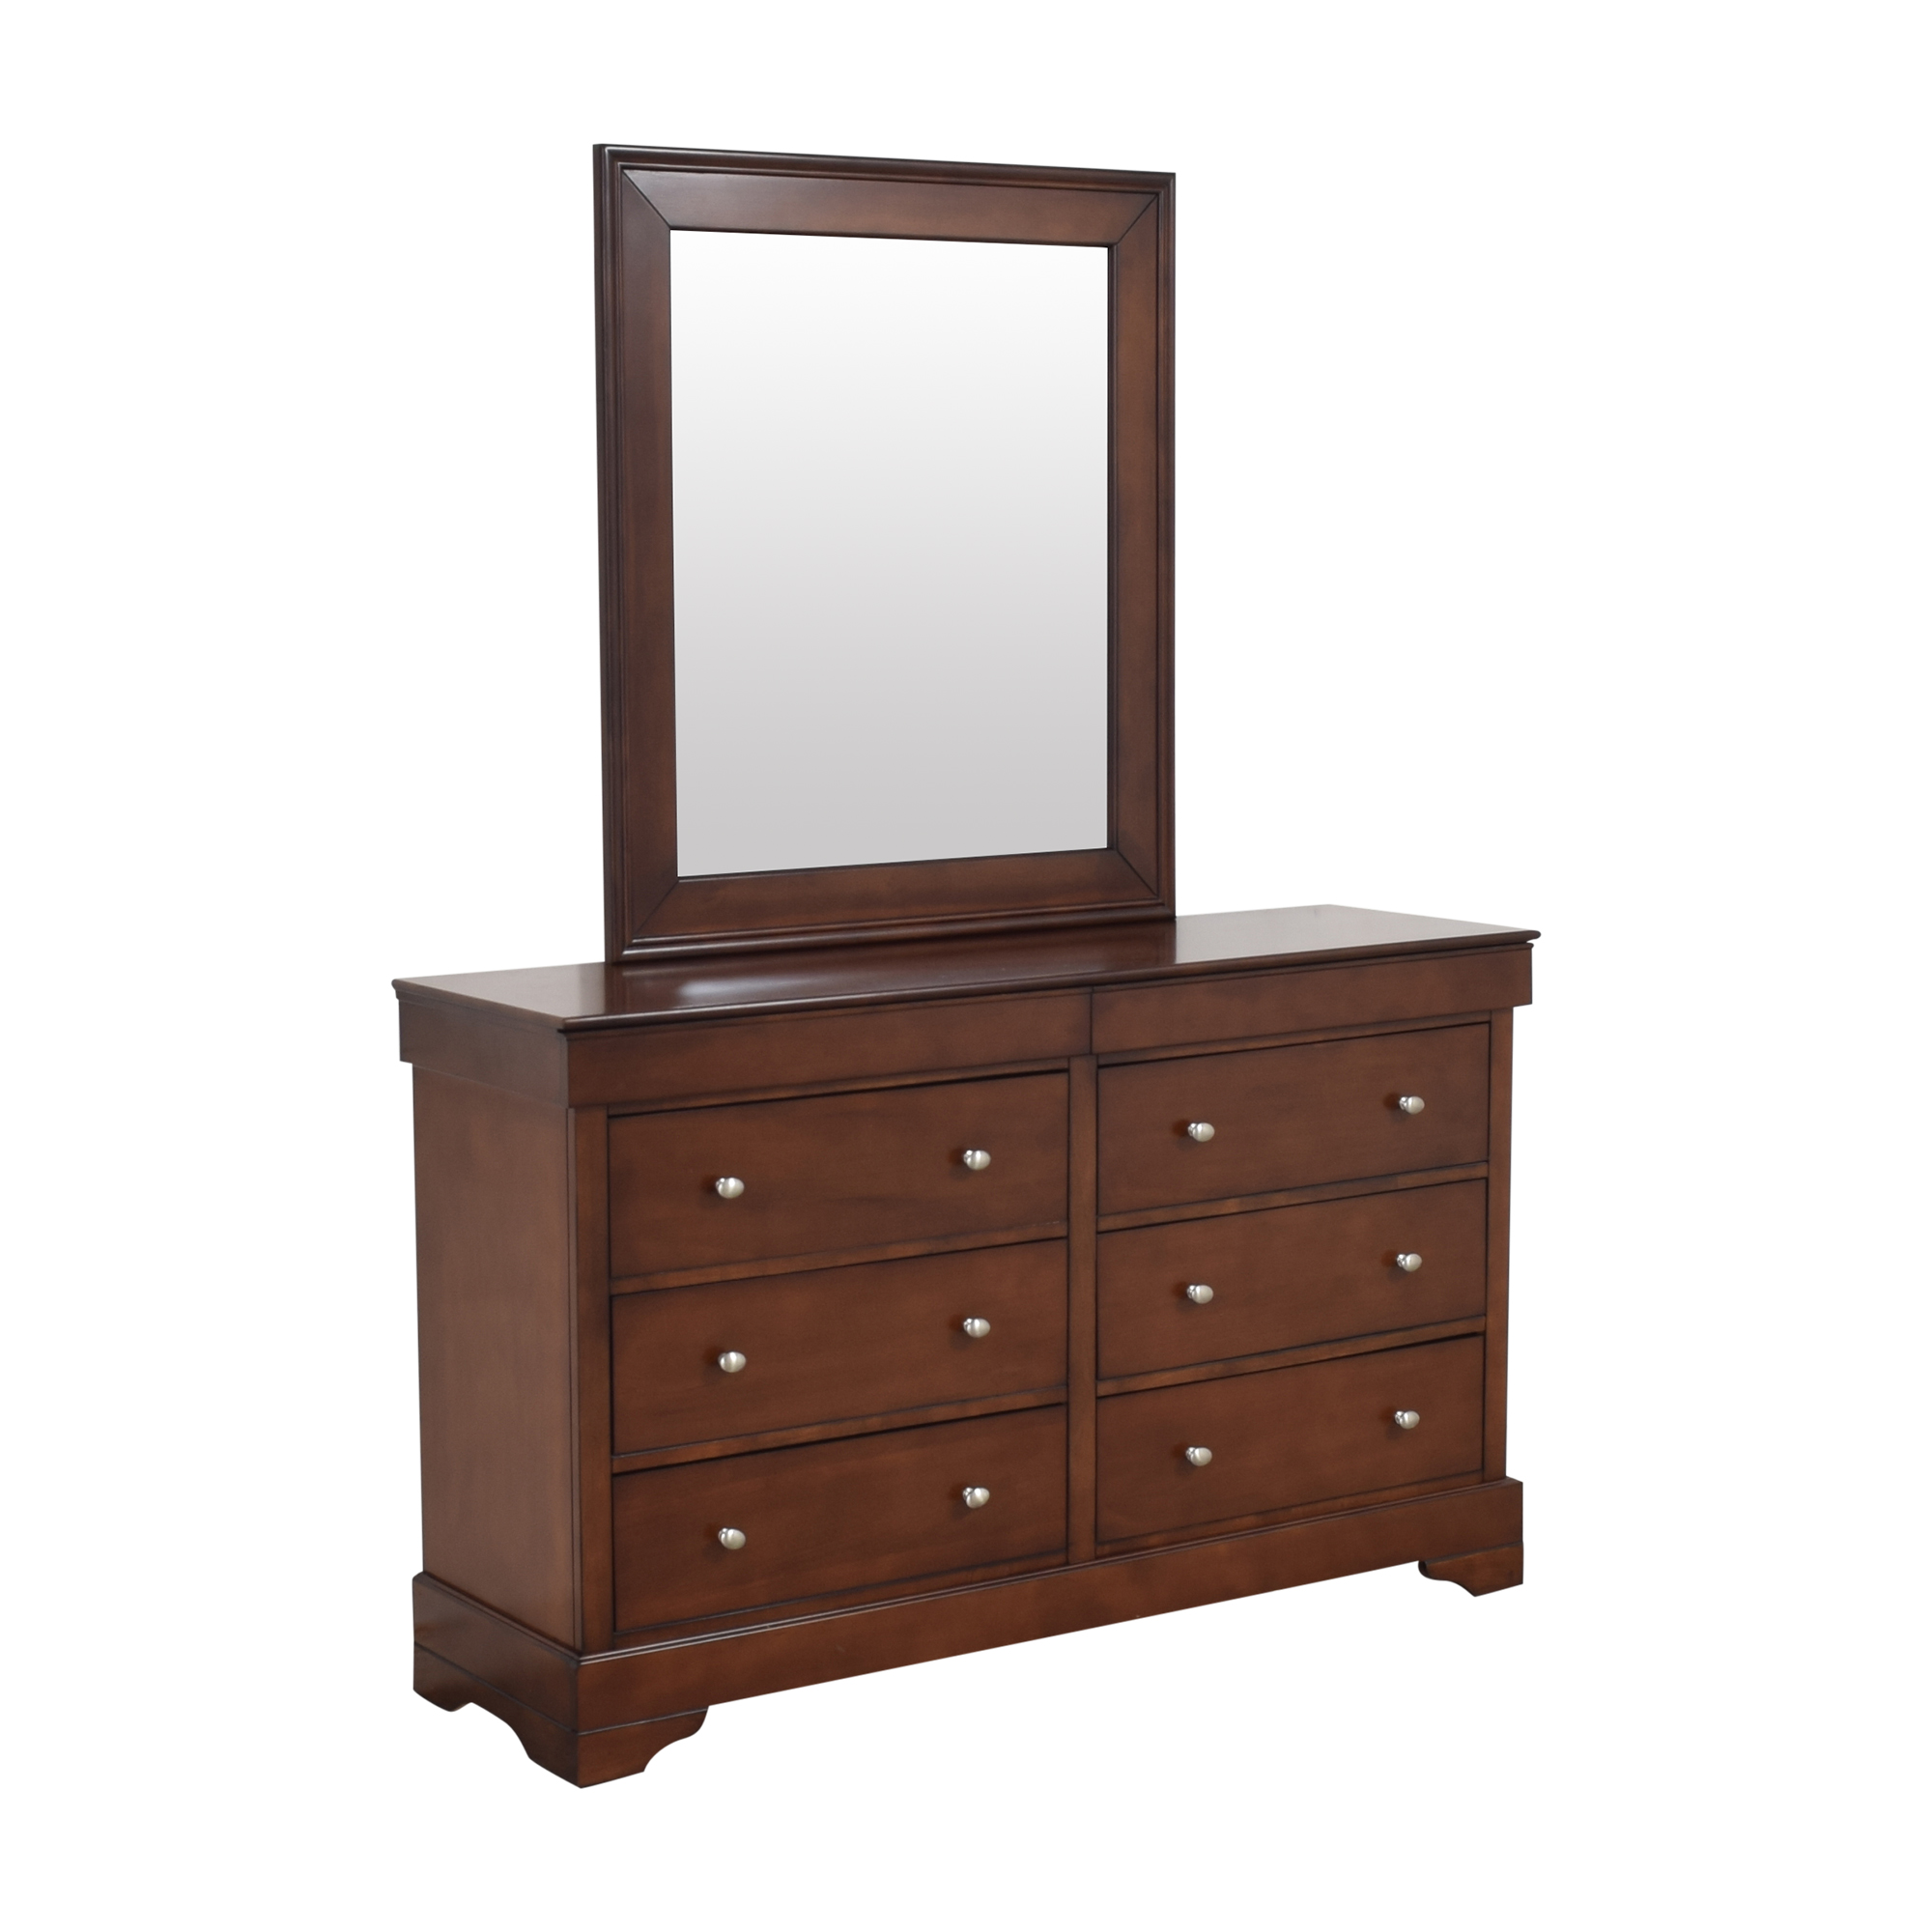 Lifestyle Solutions Lifestyle Solutions Double Dresser with Mirror nyc